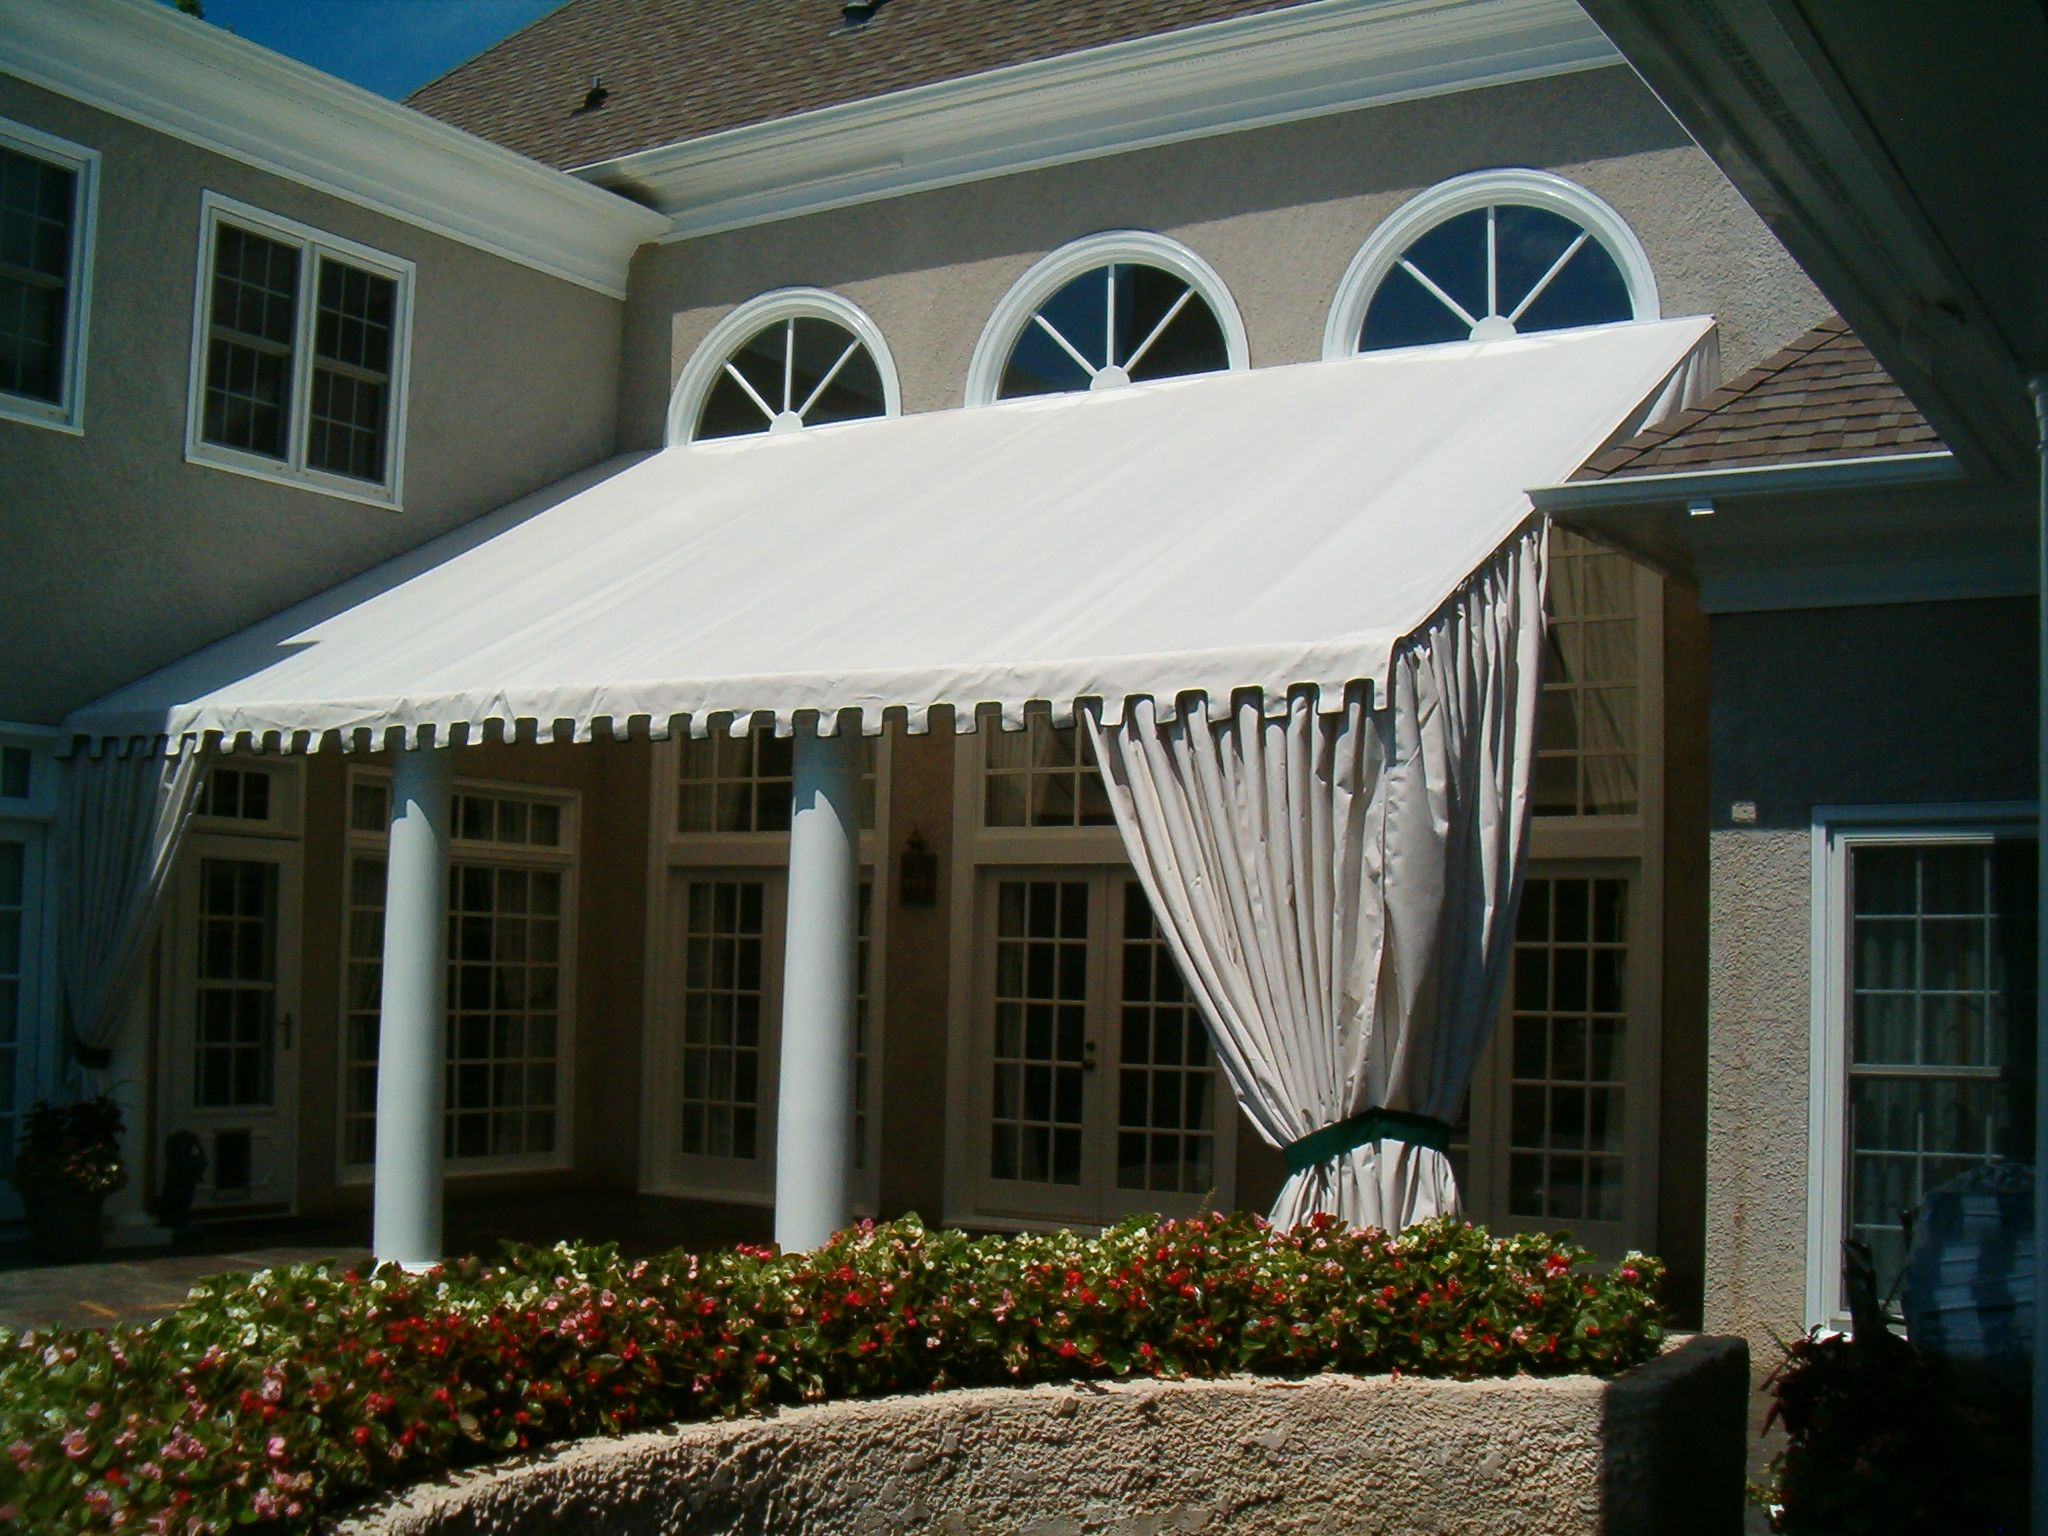 reisa awning awnings elements deck decor of image for home by important decks permanent stationary